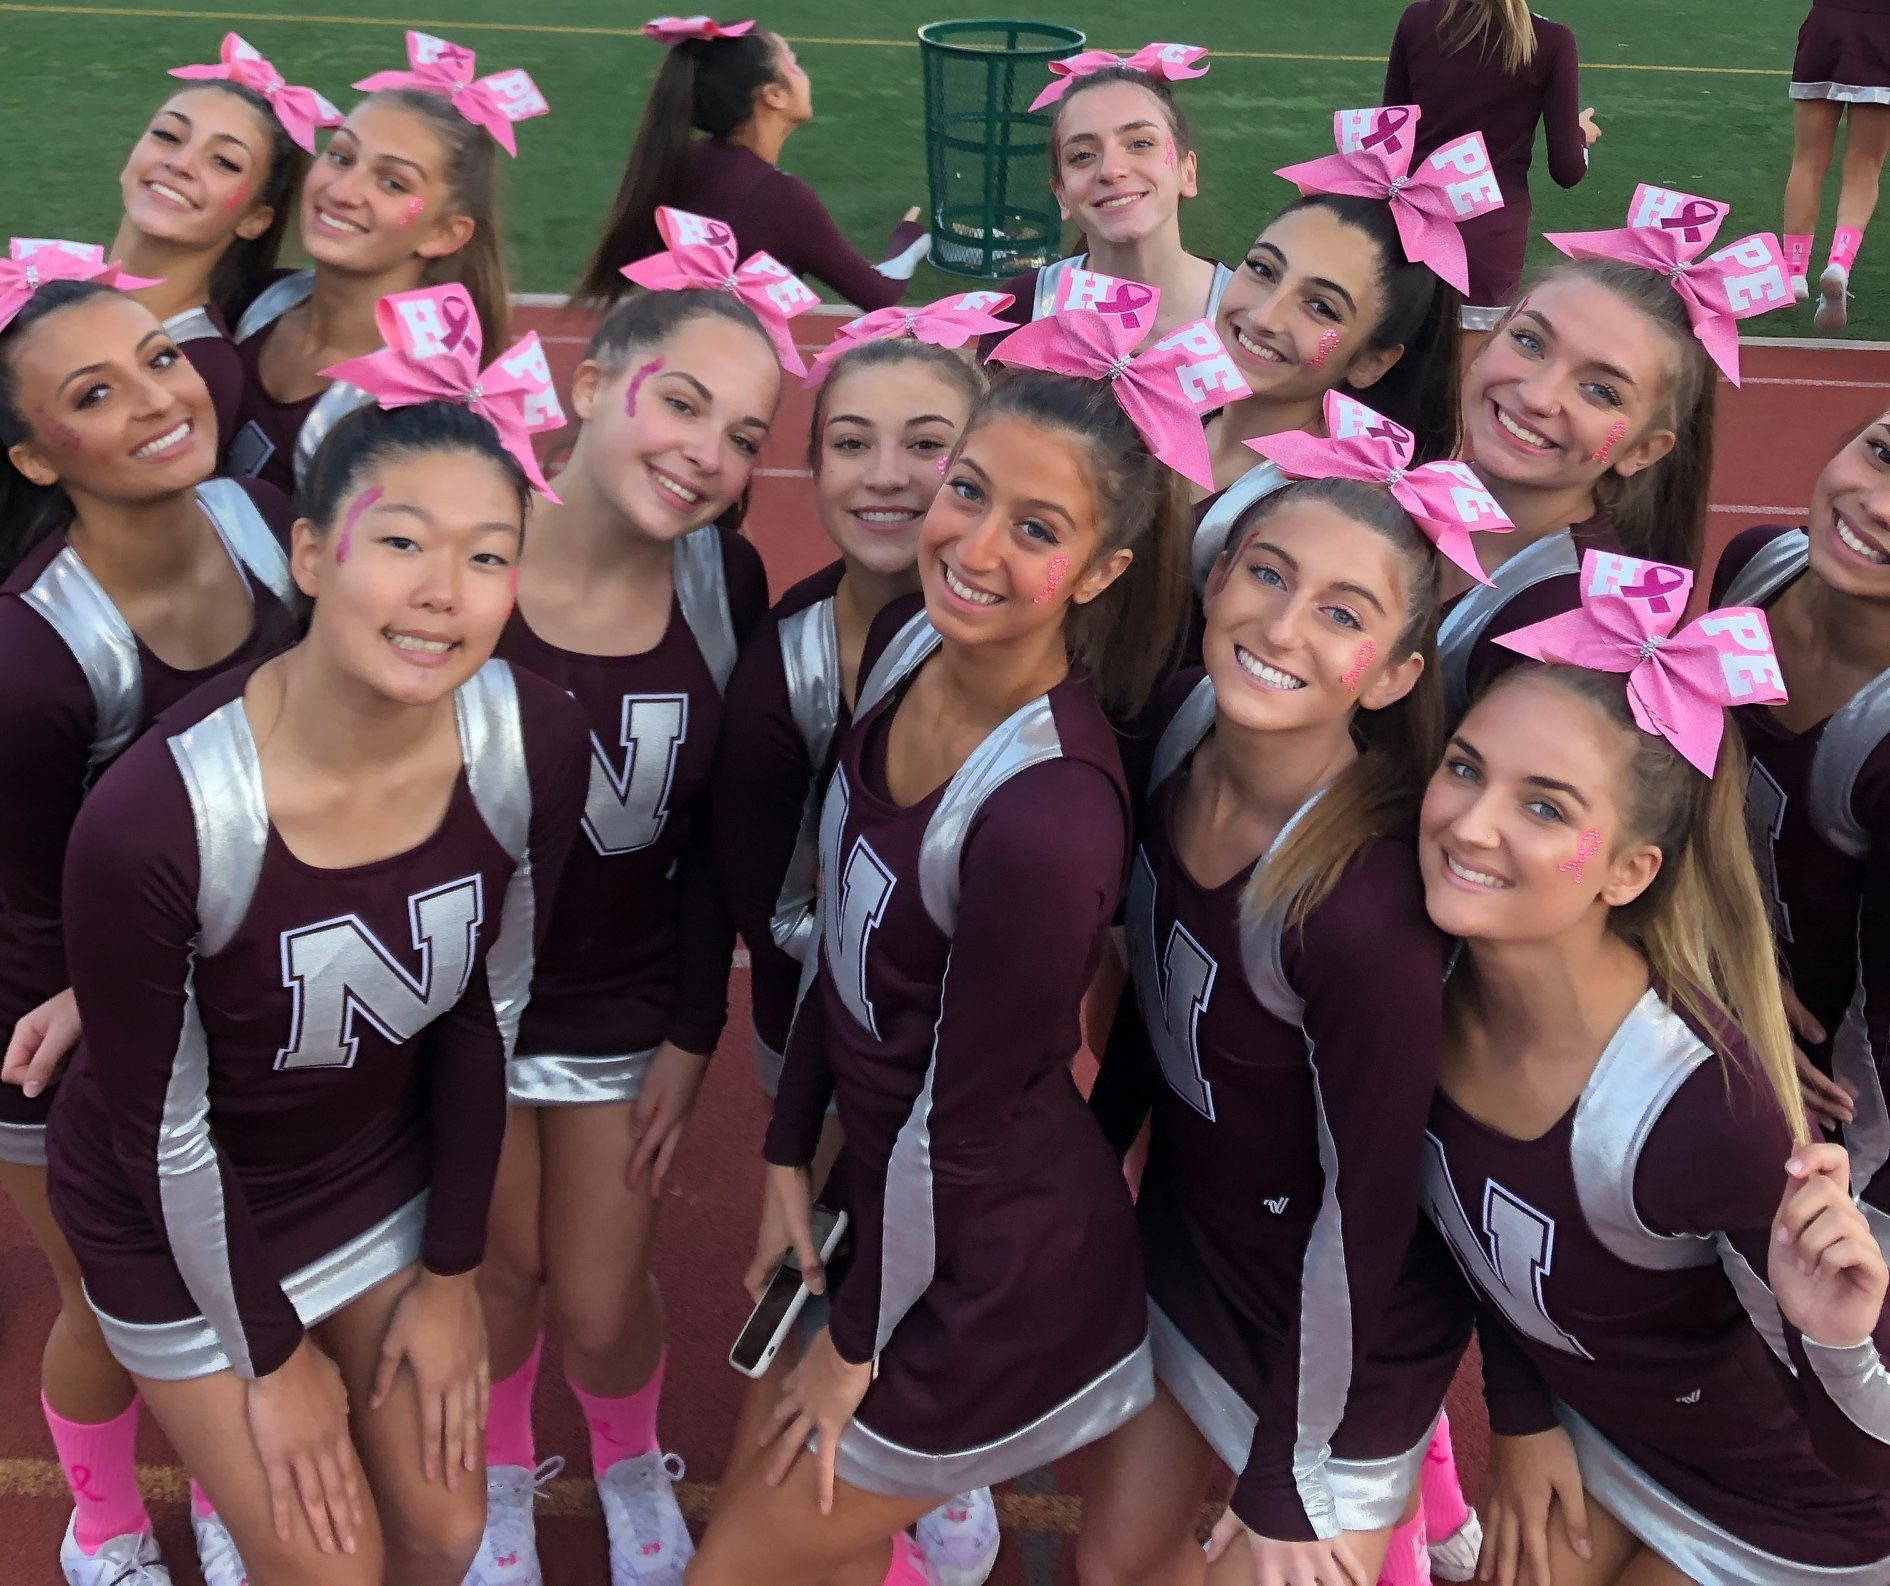 All smiles for Cheer for a Cure!